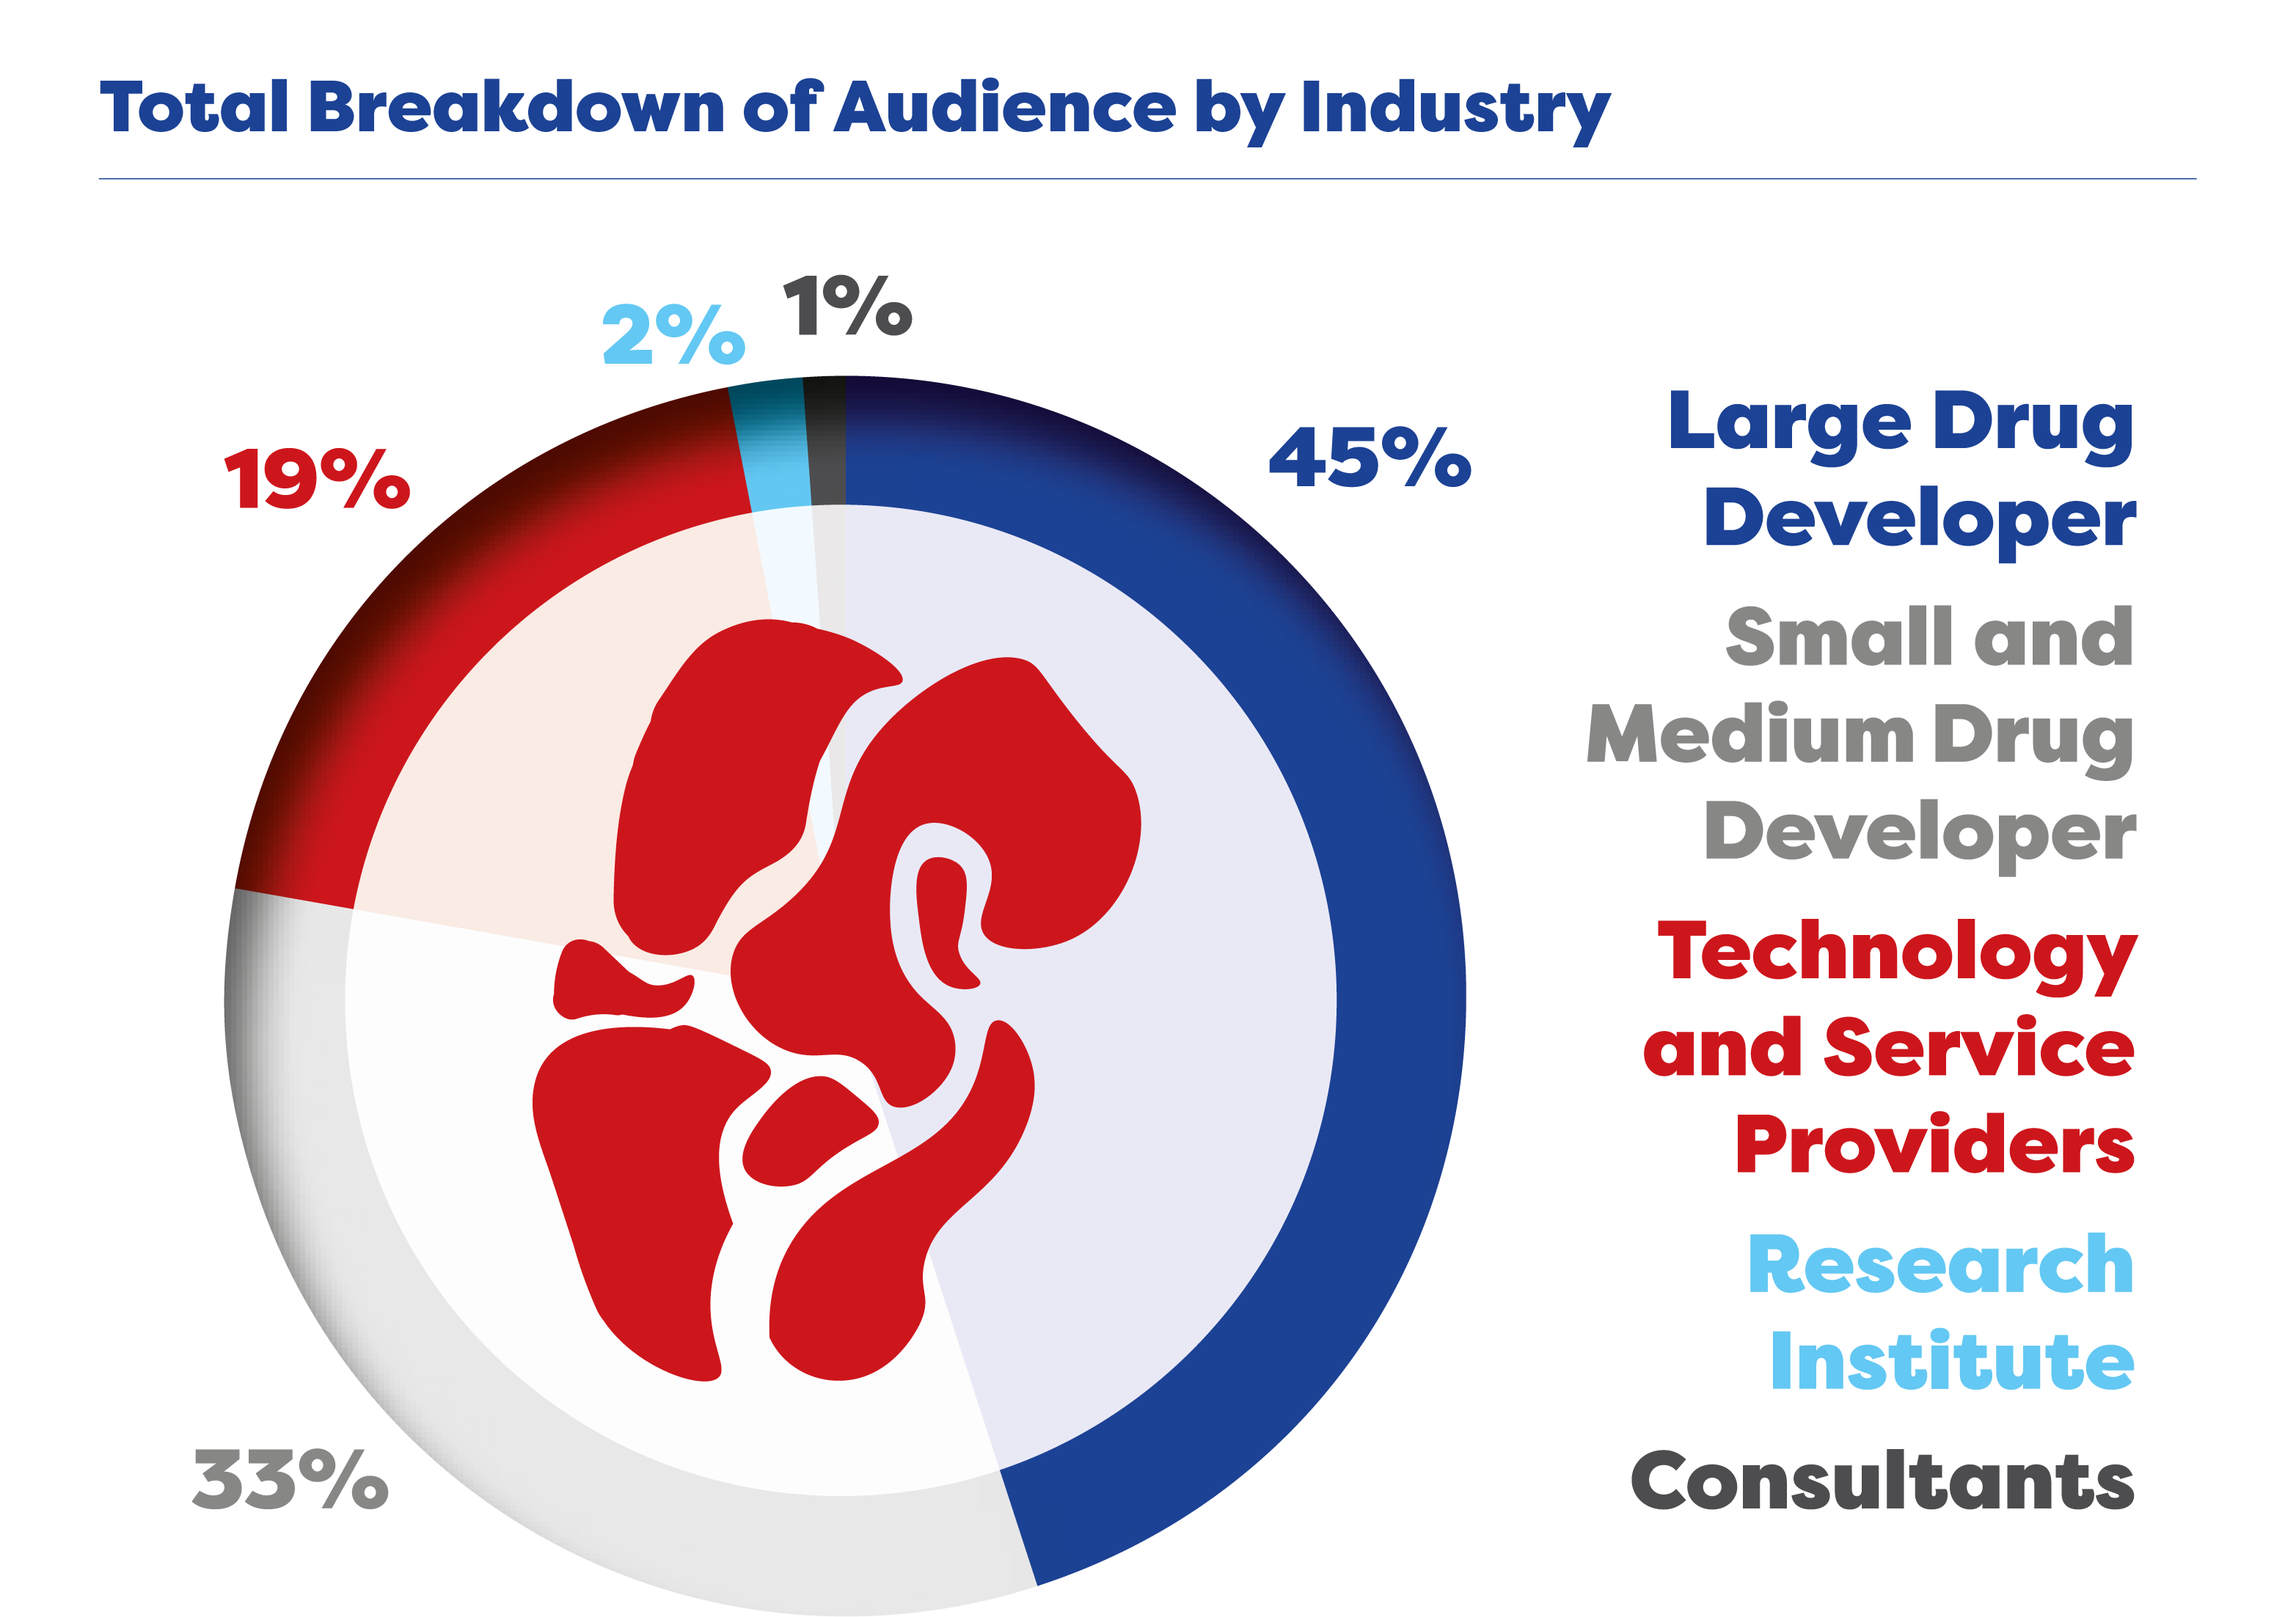 Audience by Industry